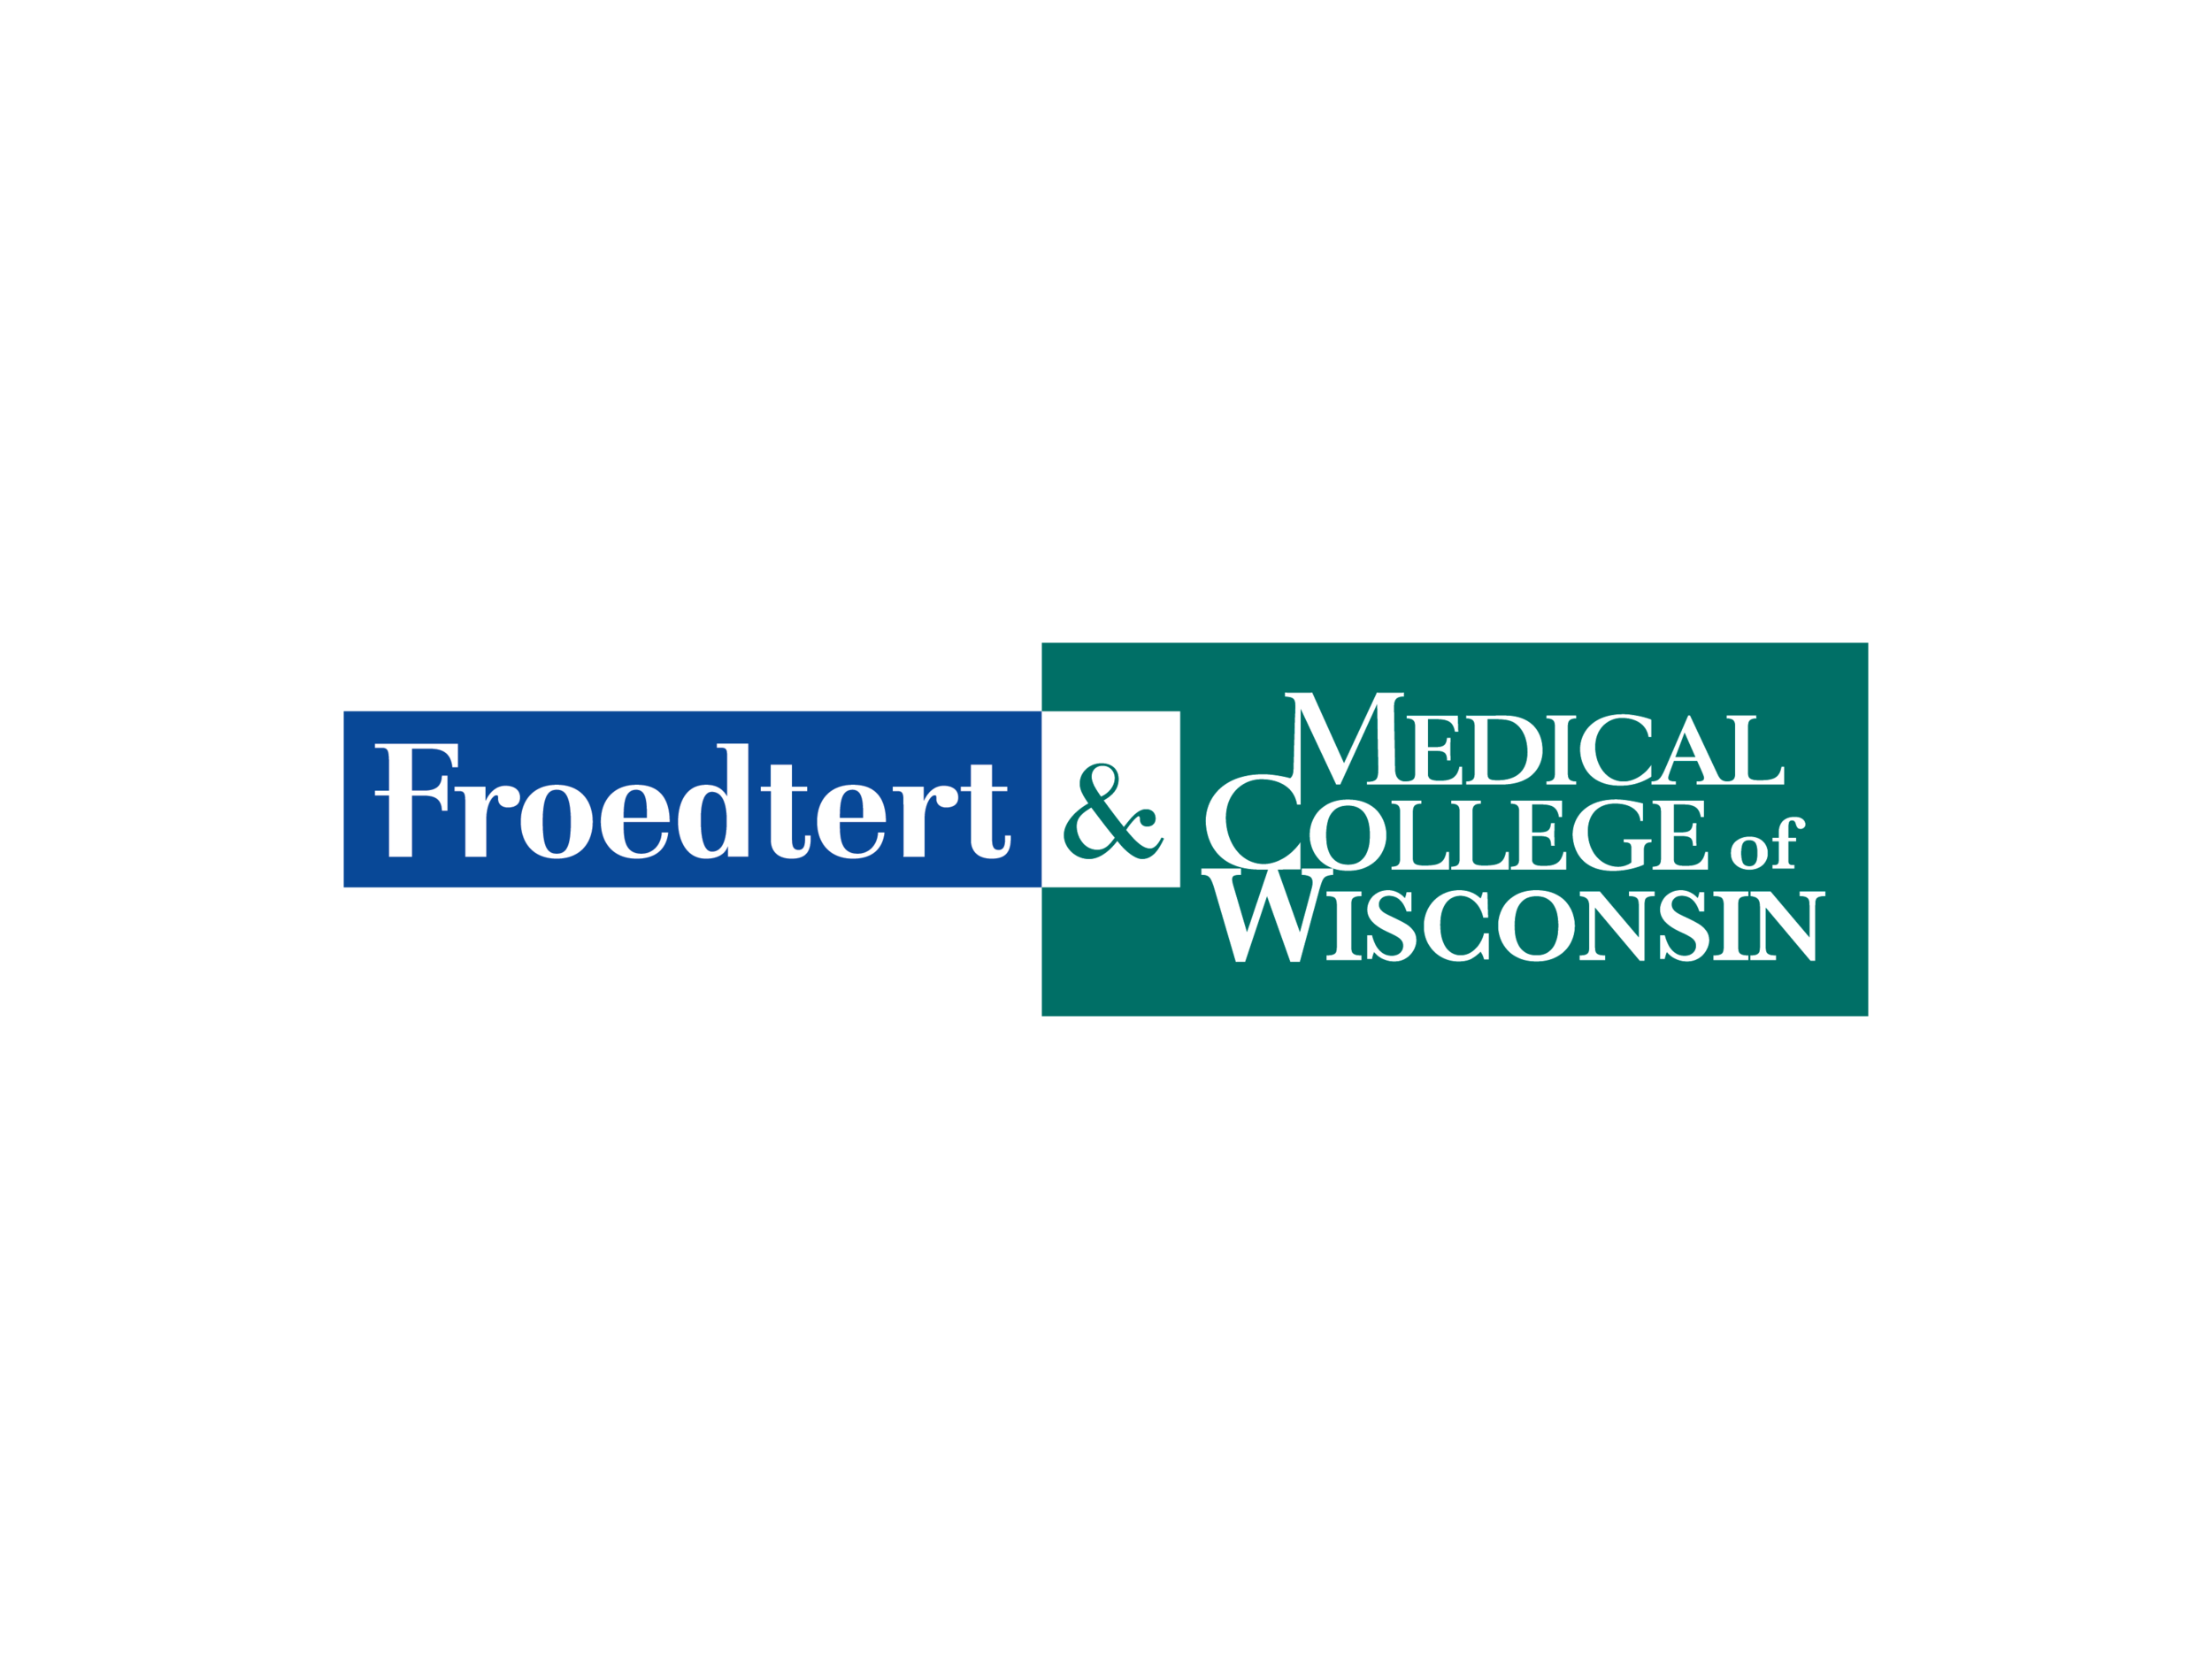 Froedtert & Medical College of Wisconsin-750px-01.png